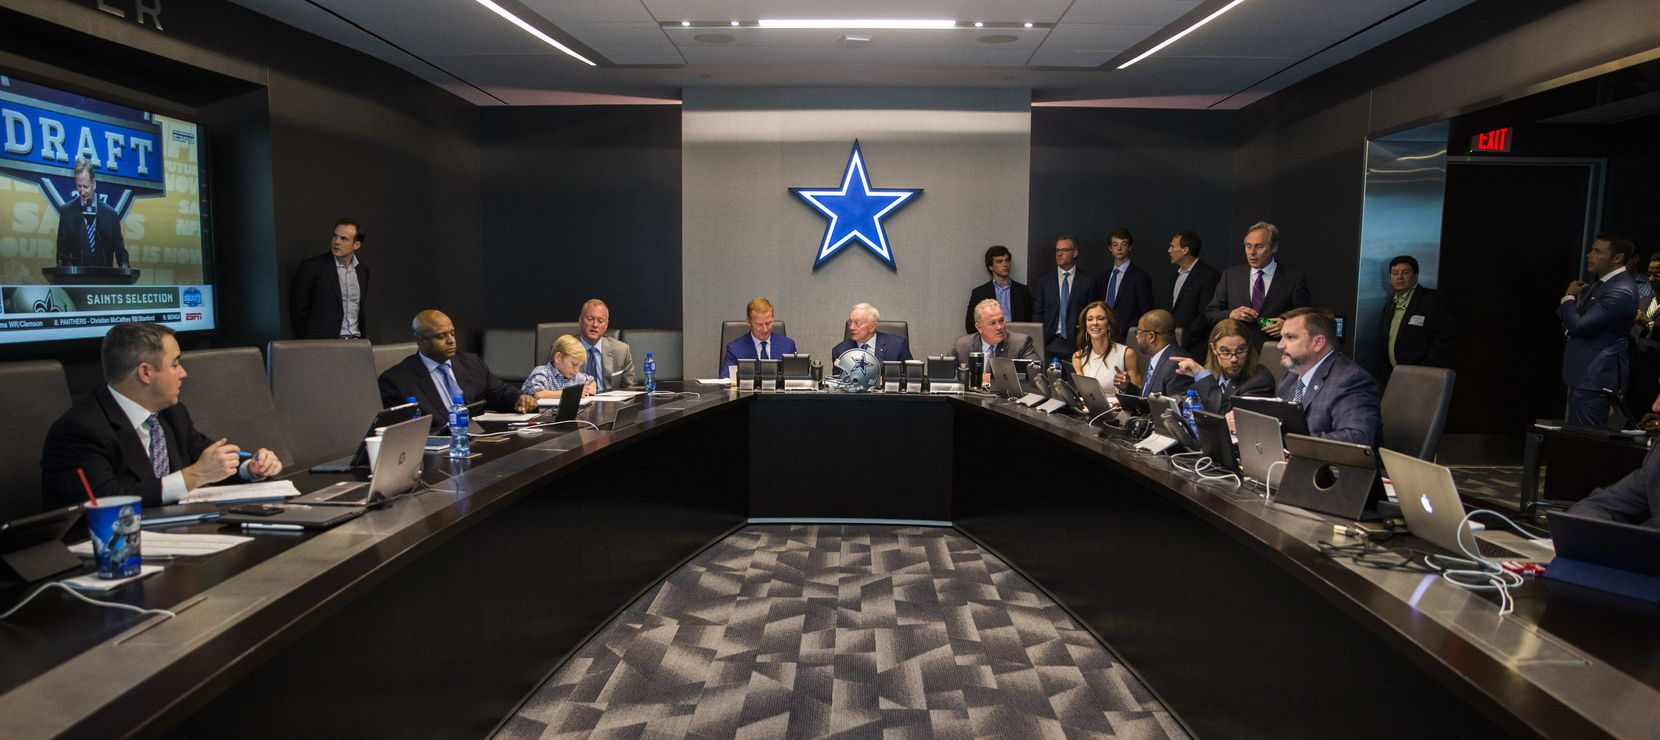 Dallas Cowboys head coach Jason Garrett, team owner Jerry Jones, executive vice president and CEO Stephen Jones, executive vice president and chief brand officer Charlotte Jones Anderson and other executives discuss players in the war room during round one of the 2017 NFL Draft on Thursday, April 27, 2017, at The Star in Frisco.